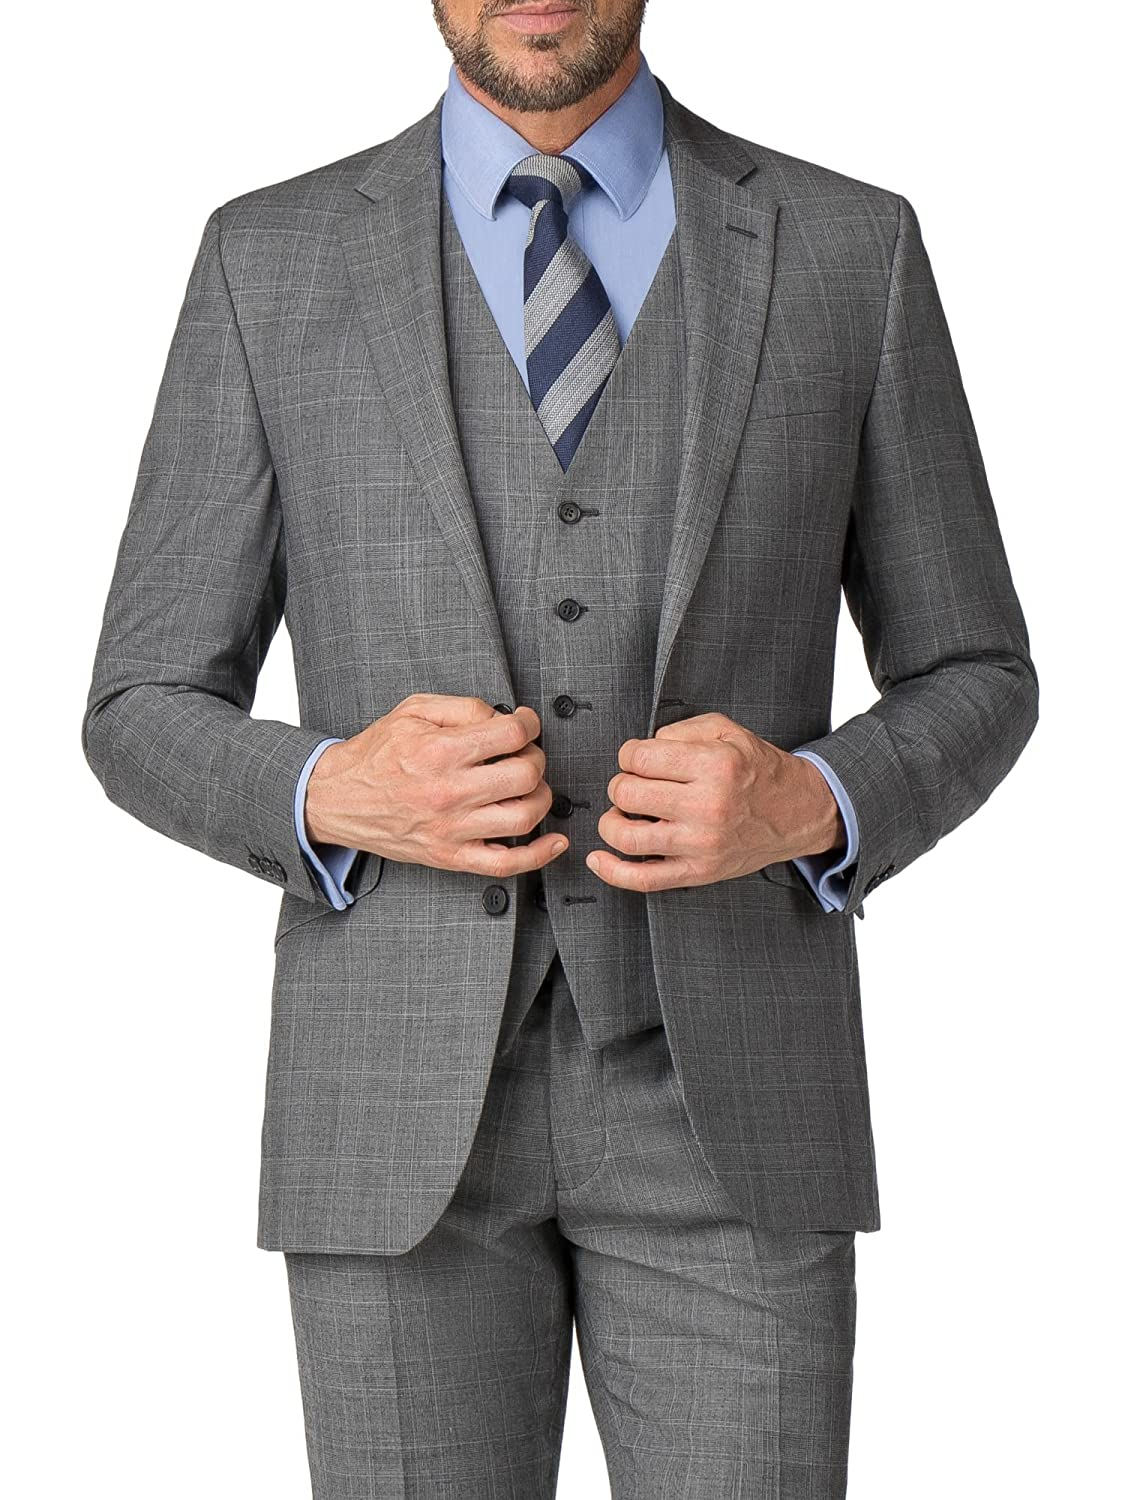 b2042c87252 Pierre Cardin Men's Grey Suit Jacket in 40L to 46S: Amazon.co.uk: Clothing